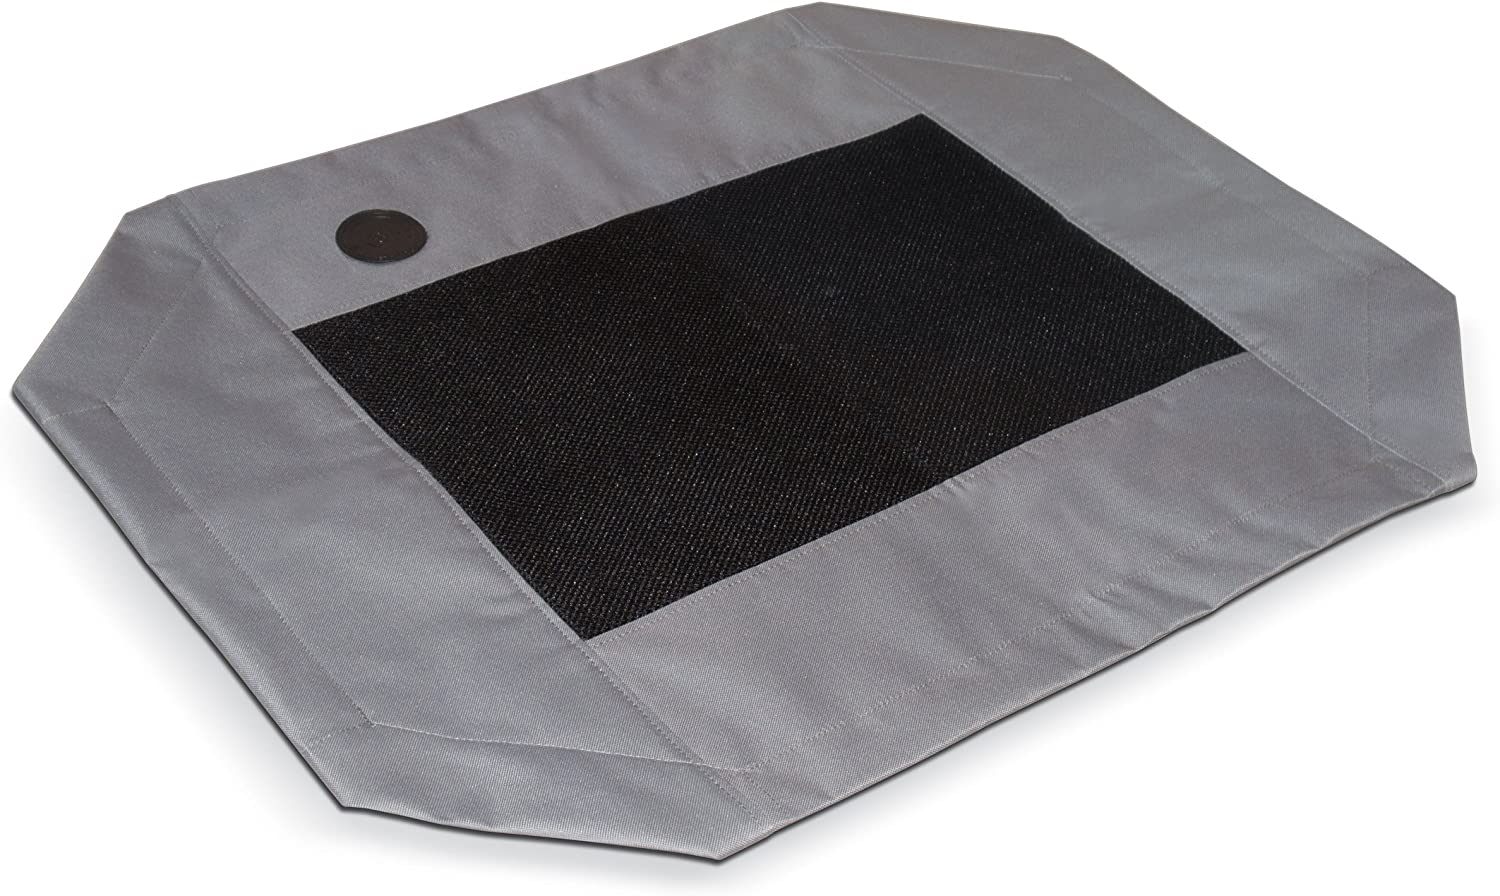 "K&H Pet Products Original Pet Cot Replacement Cover Large Gray/Mesh 30"" x 42"""